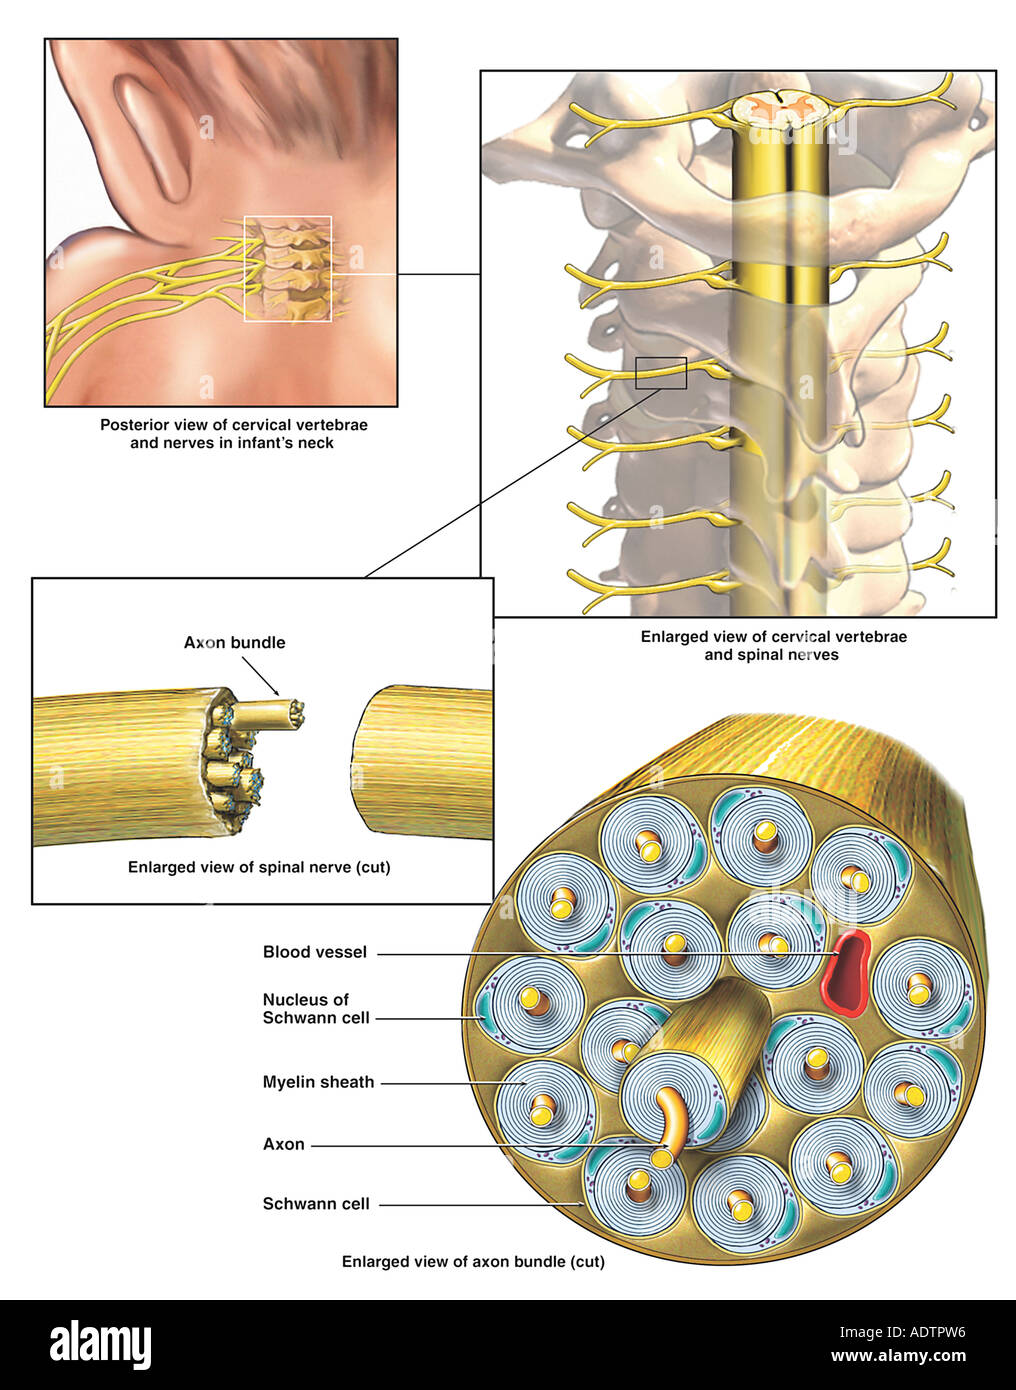 Anatomy of a Spinal Nerve in the Brachial Plexus Stock Photo ...